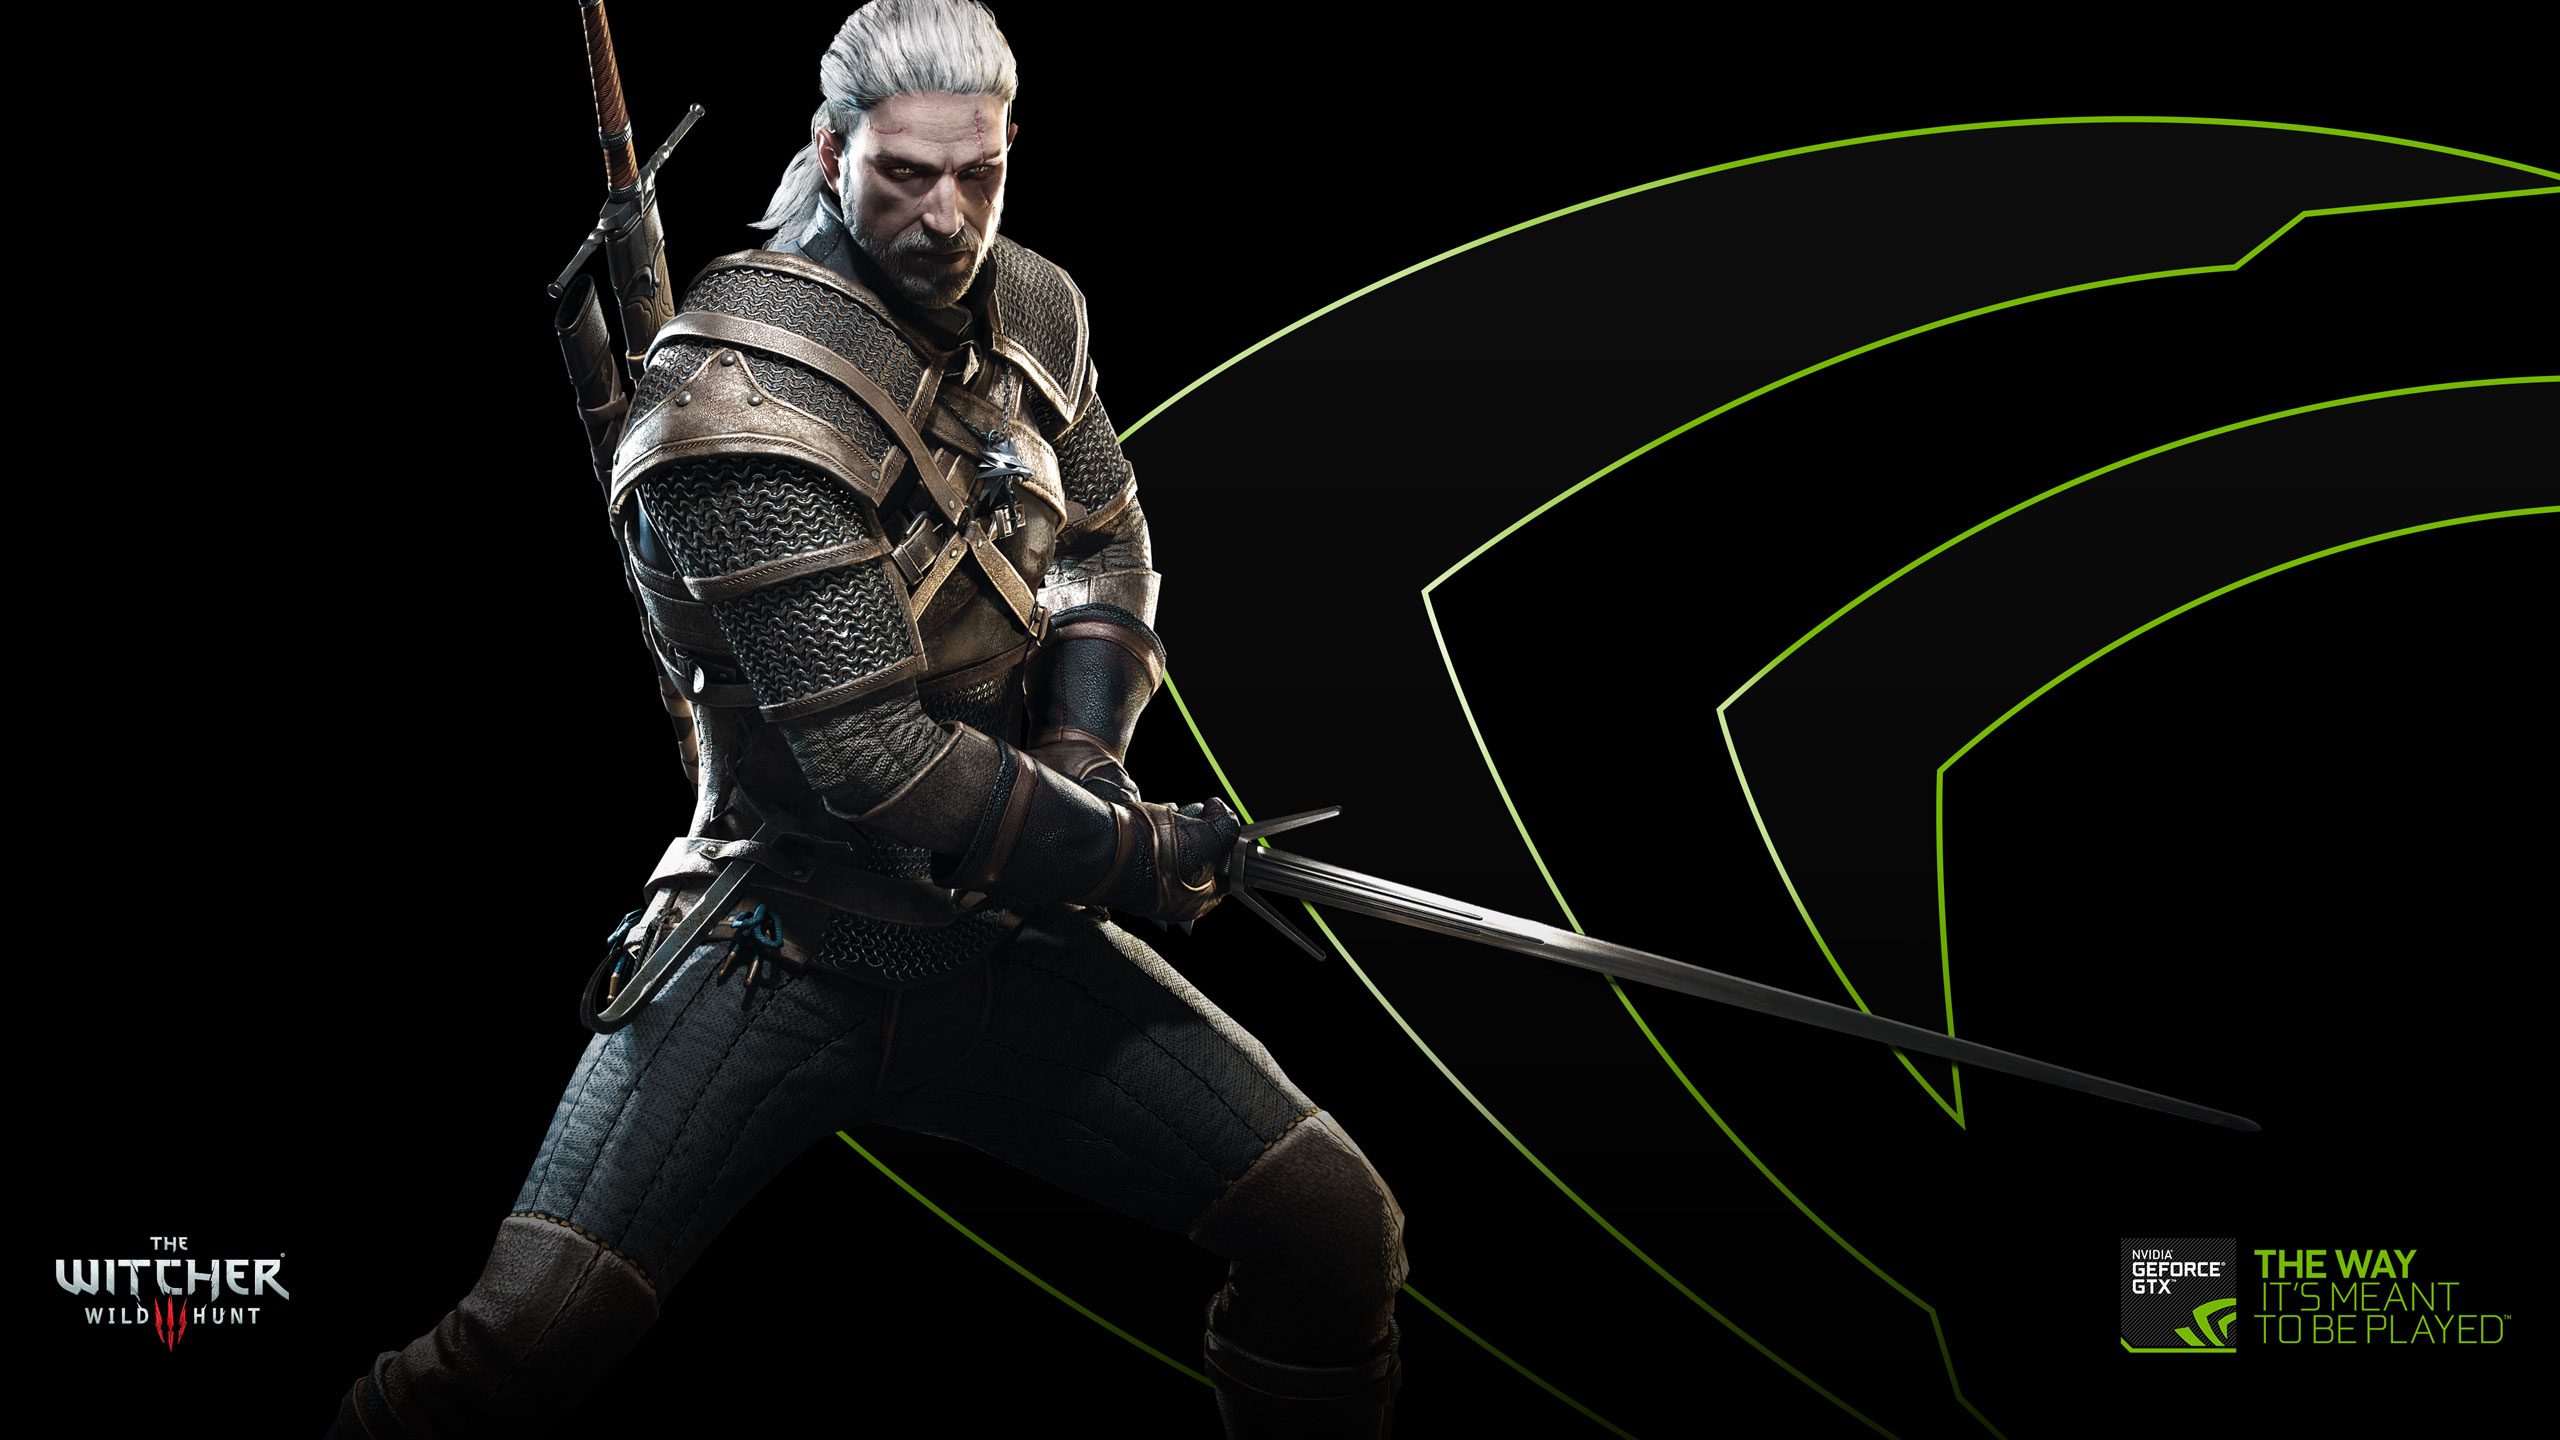 Download Exclusive The Witcher 3 Wild Hunt Wallpapers